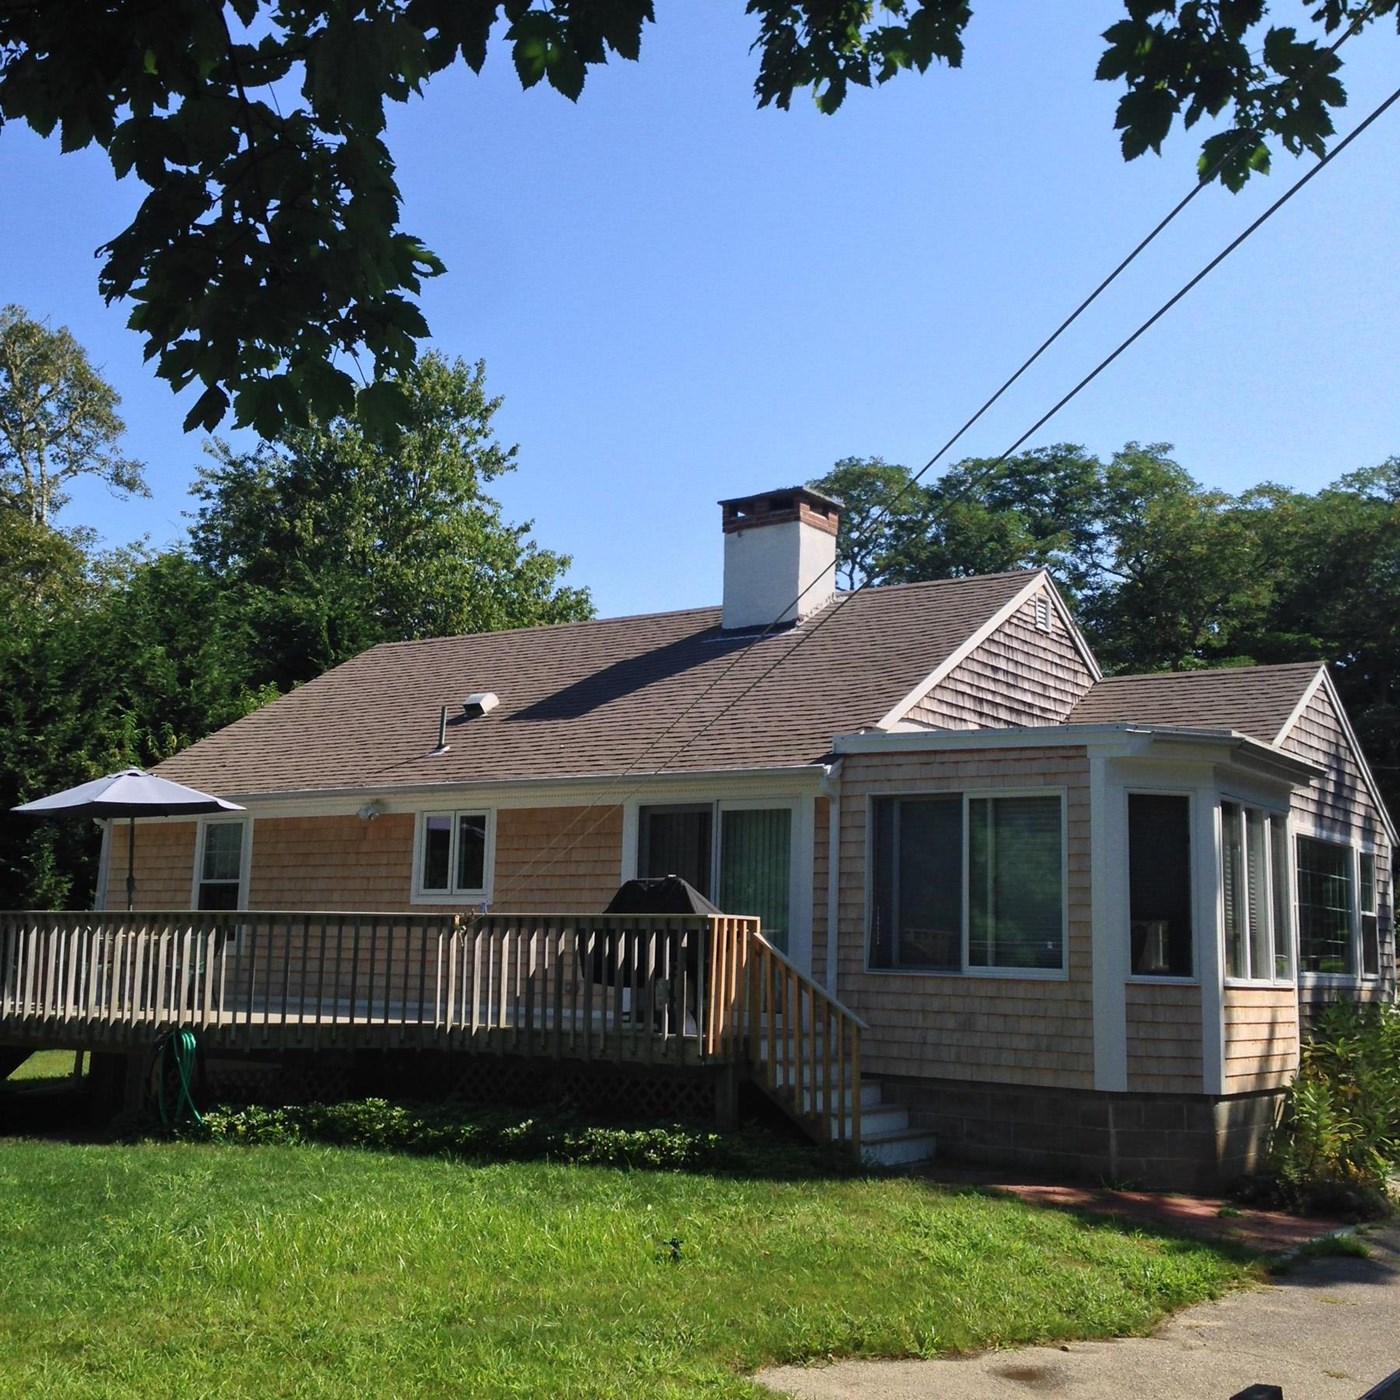 Harwich Vacation Rental Home In Cape Cod MA 02661, 1/2mi